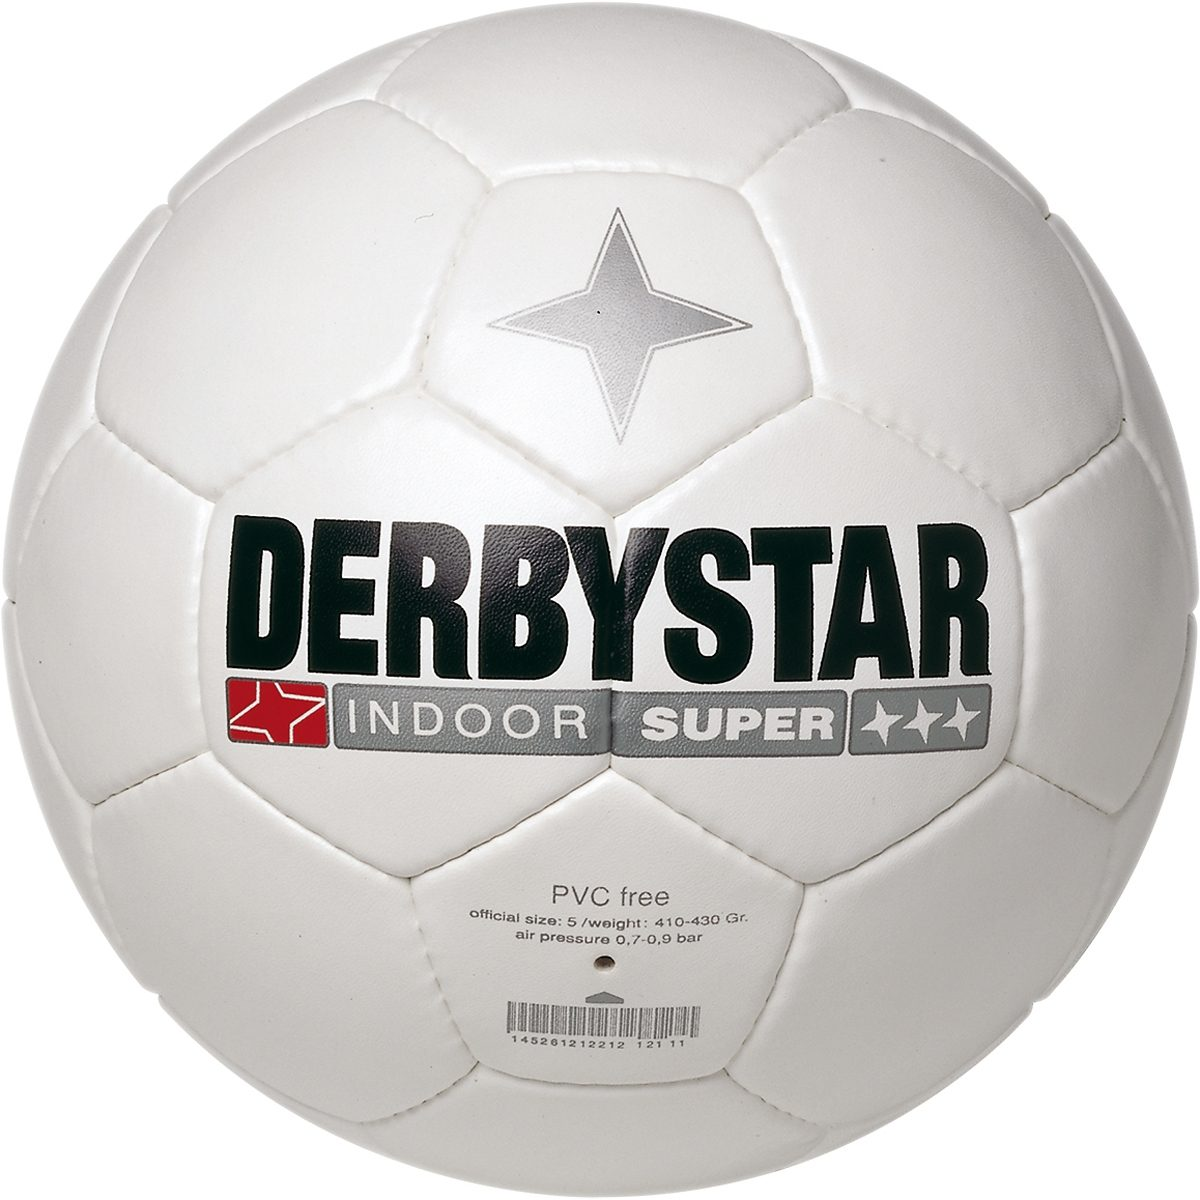 DERBYSTAR Indoor Super Fußball